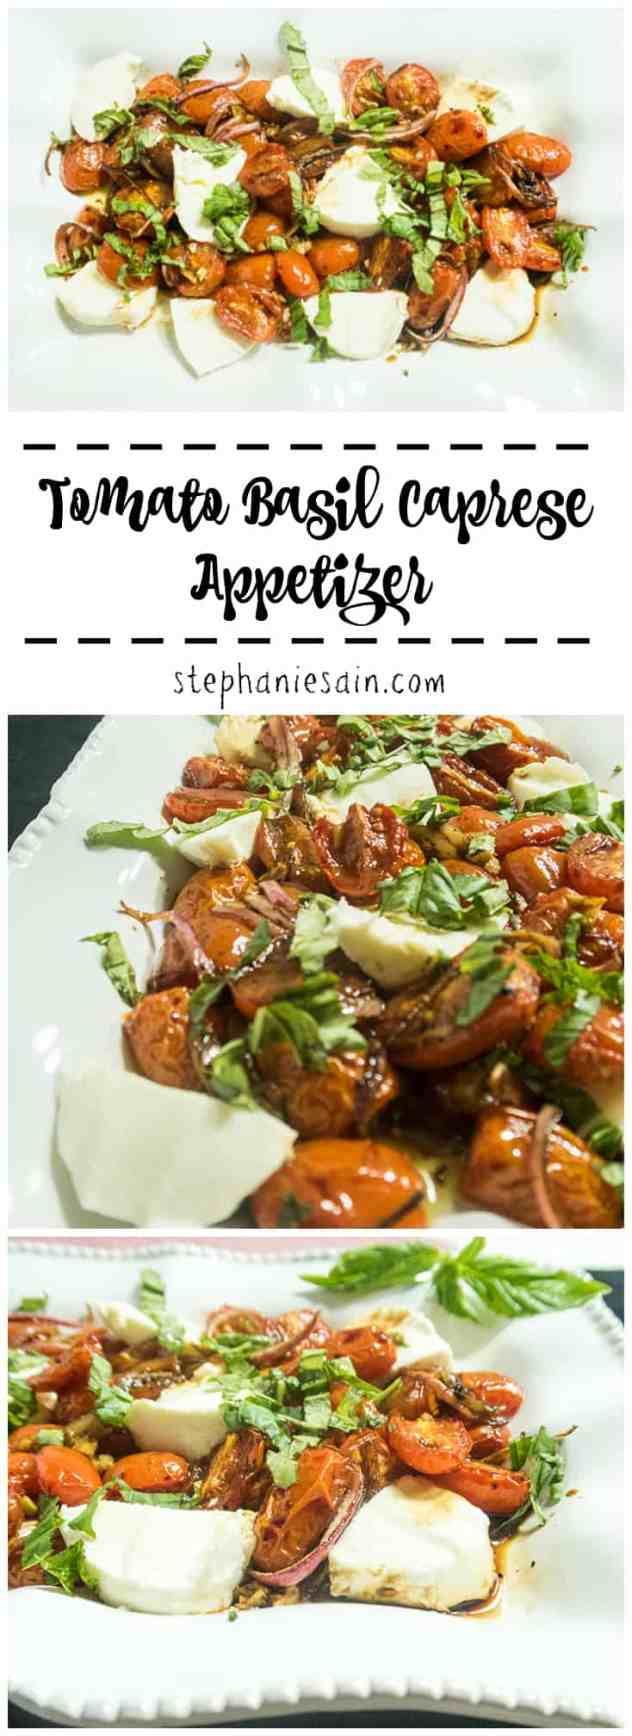 This Tomato Basil Caprese Appetizer is a great starter to any meal or perfect for entertaining. It's also great topped on other things such as bread, salads, etc. Vegetarian & Gluten Free.